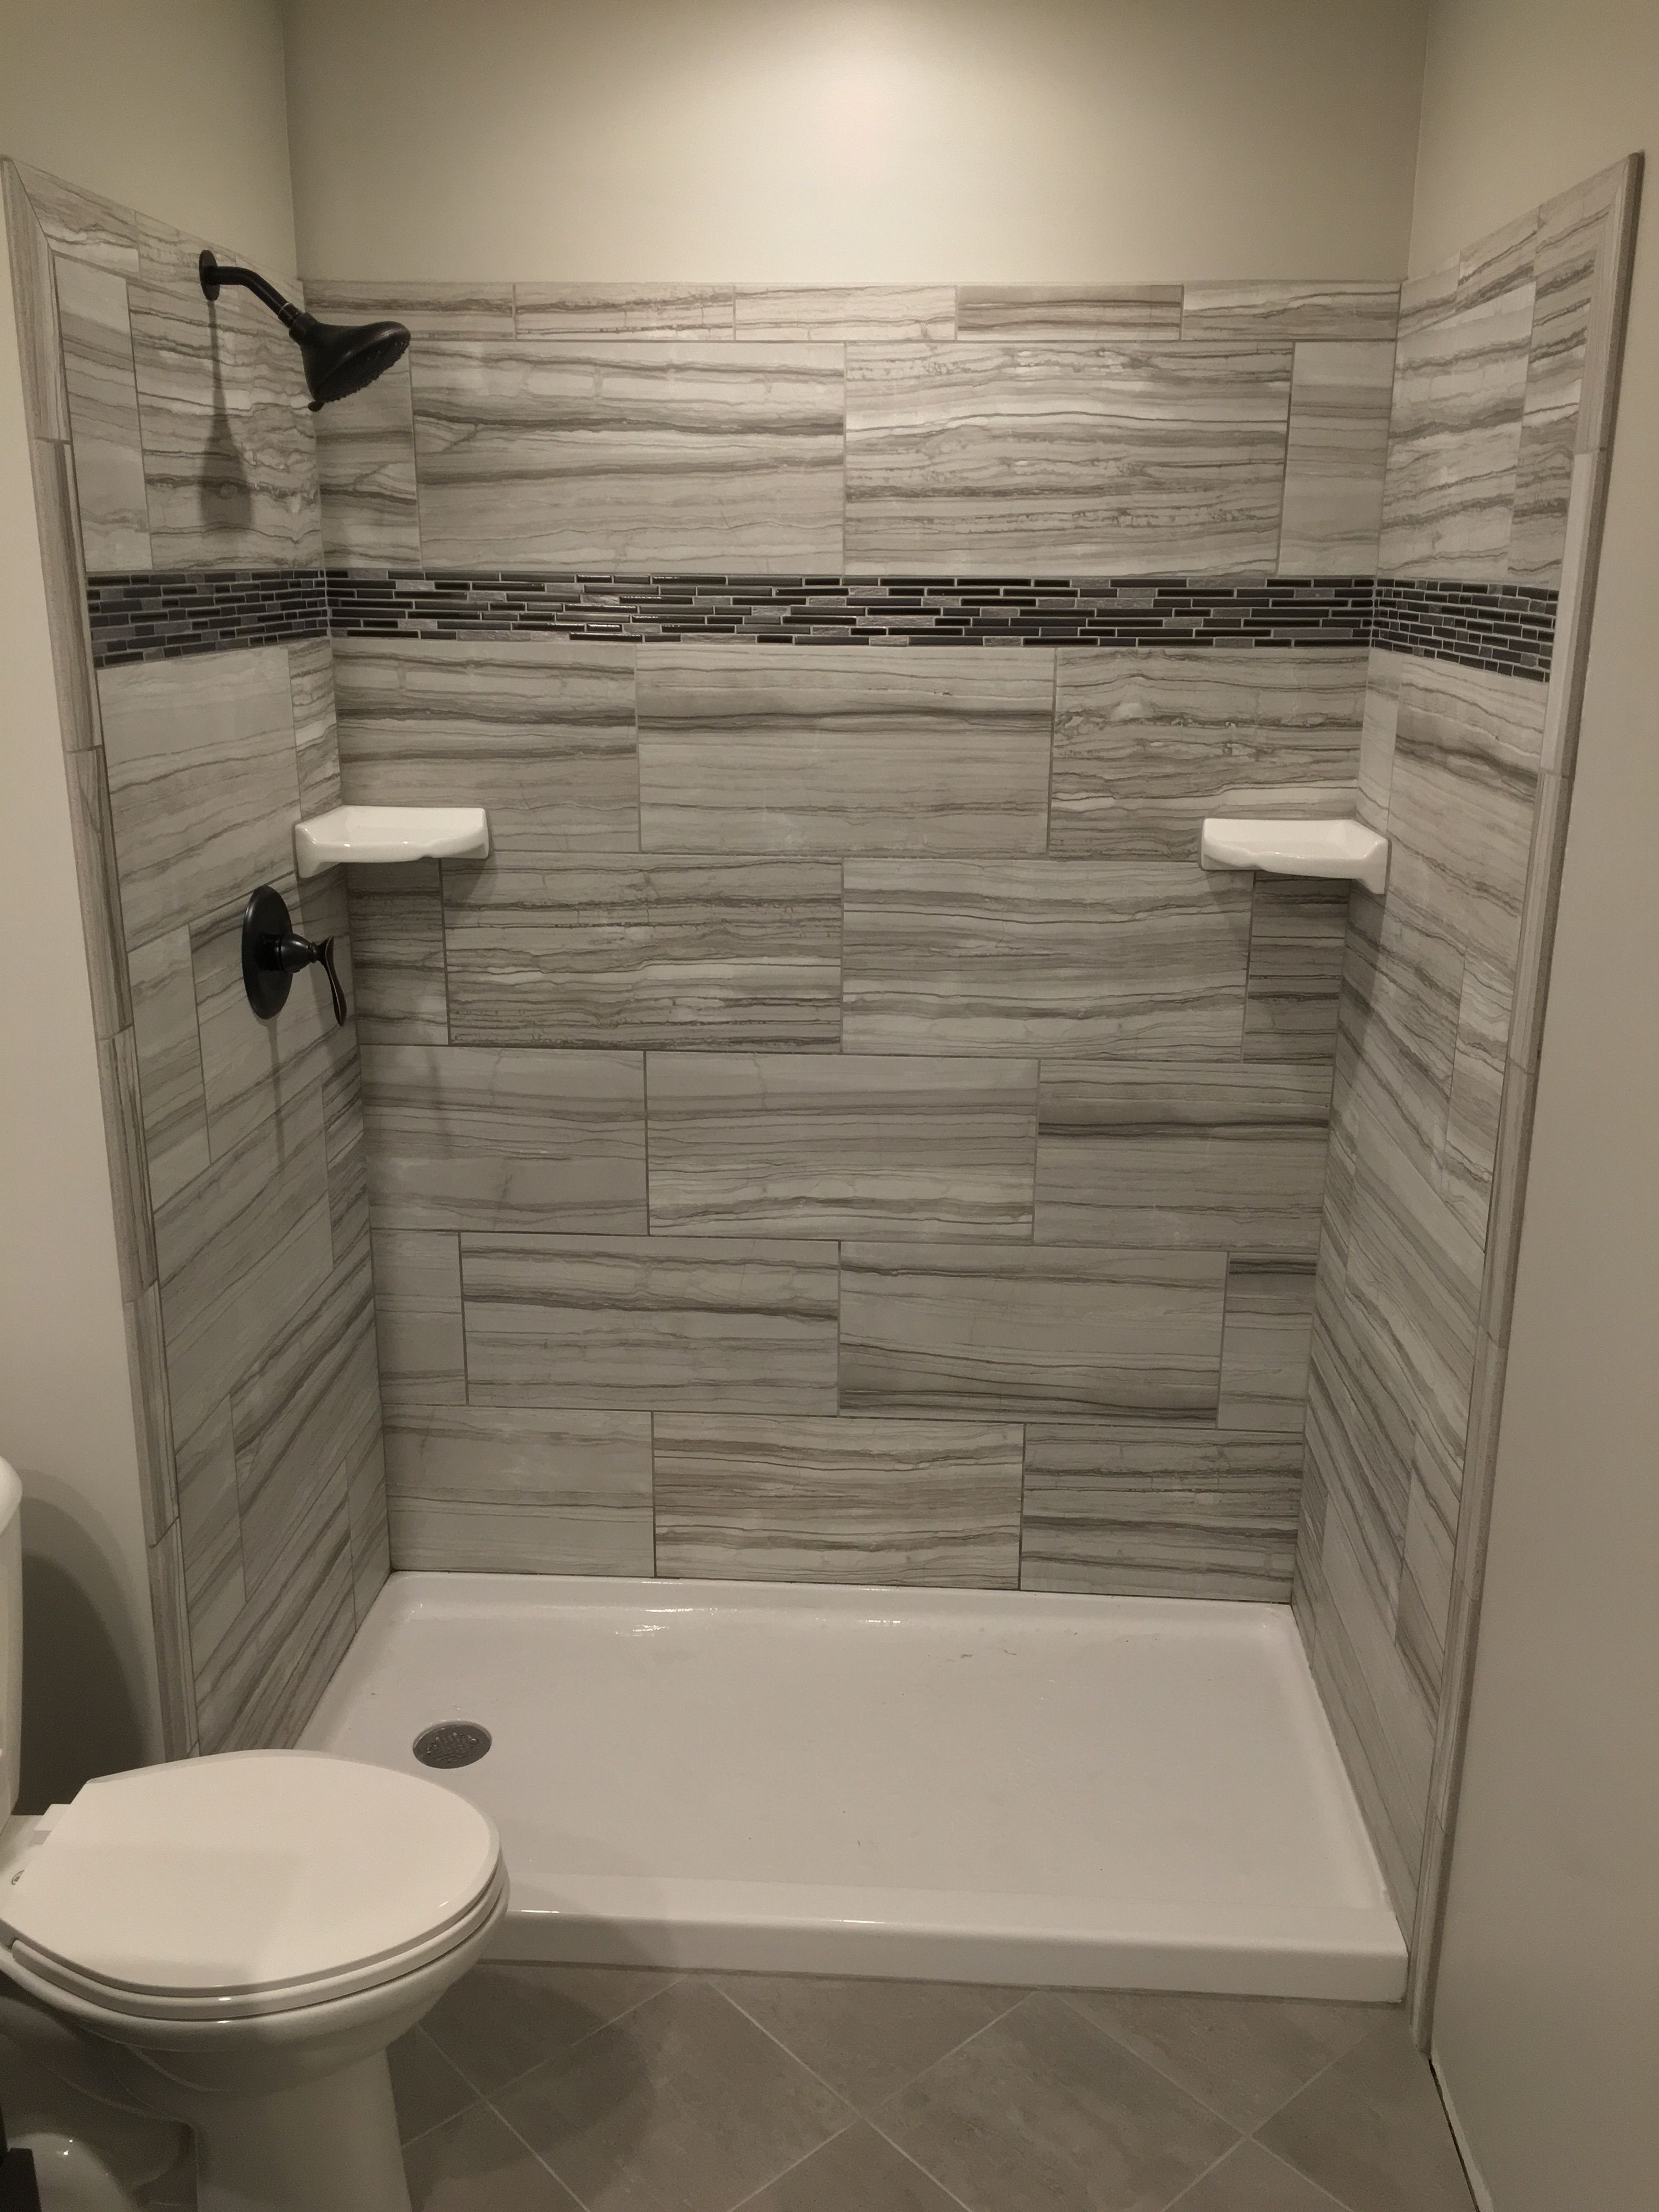 Tile shower Grigio from Home Depot